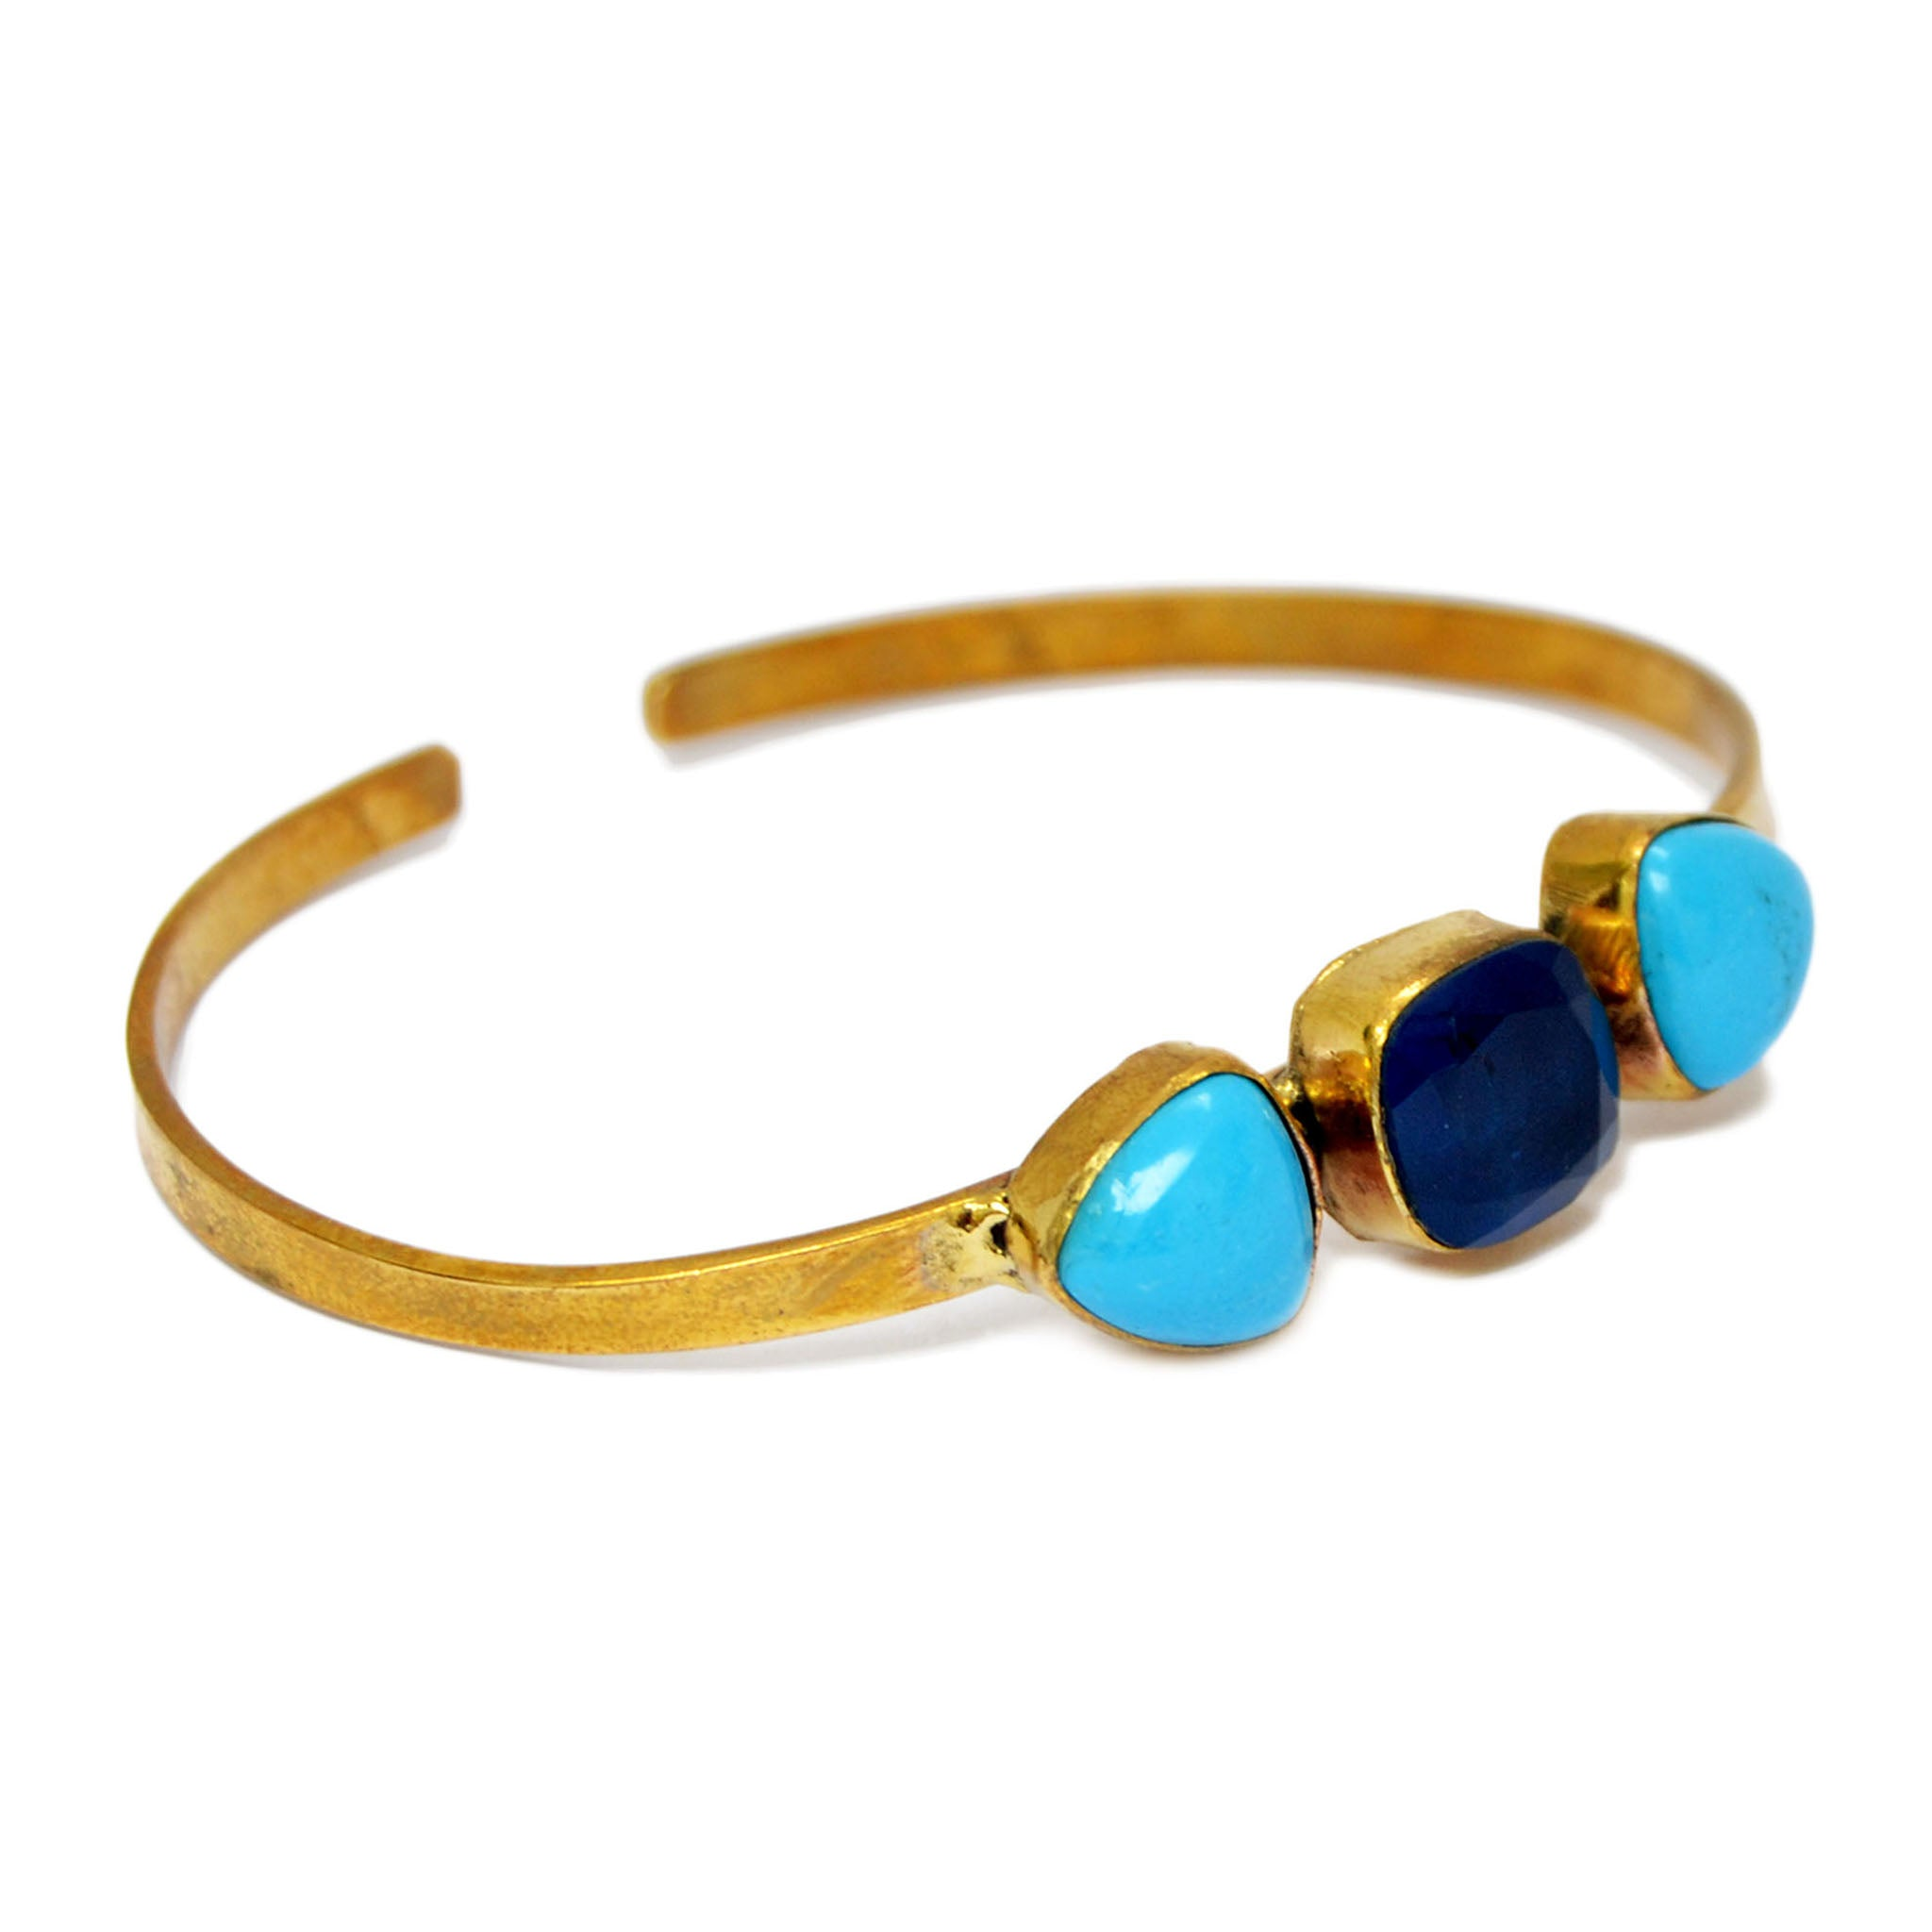 Brass gold bracelet with blue gemstones